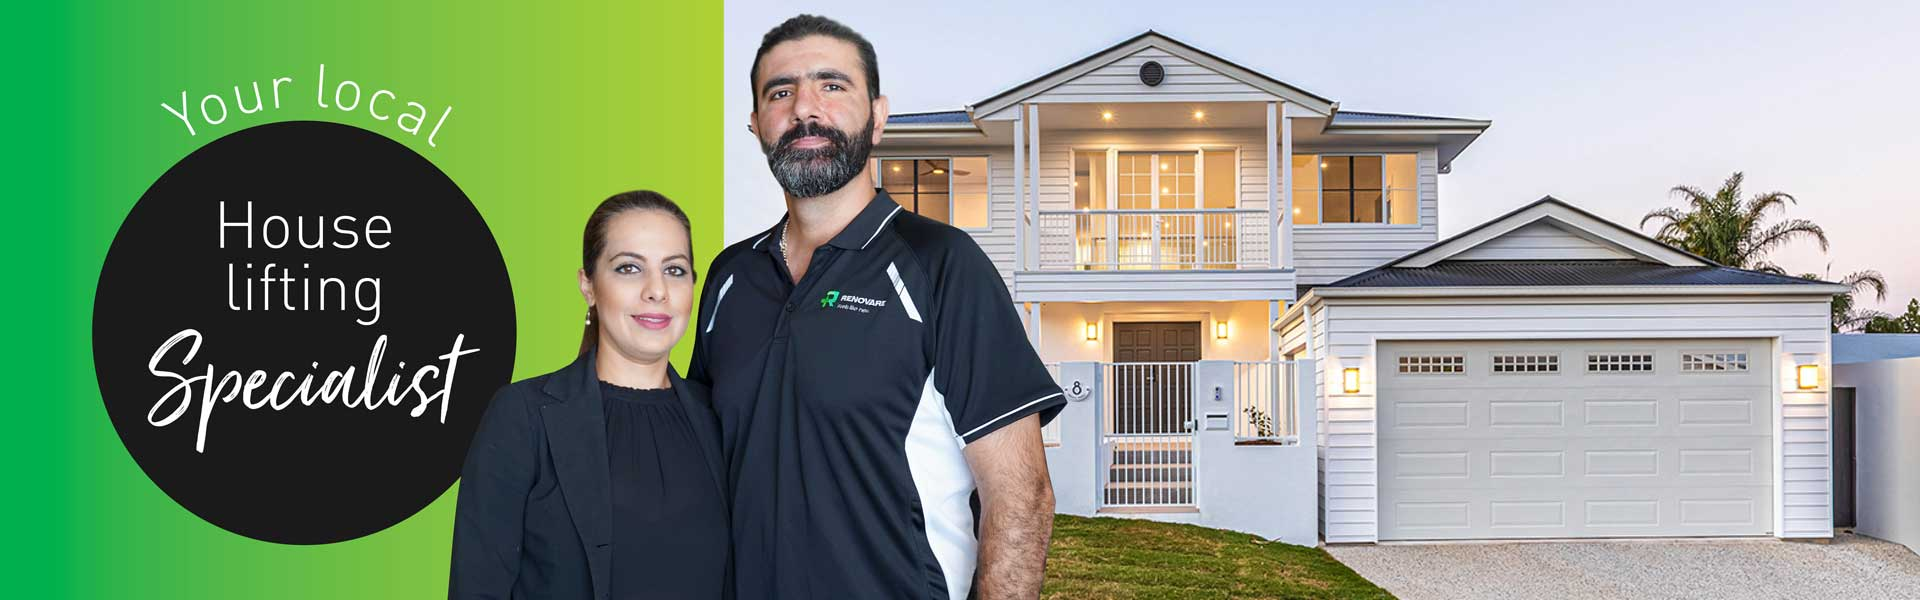 Renovare-New-Farm-House-Lifting--Specialist-Feature